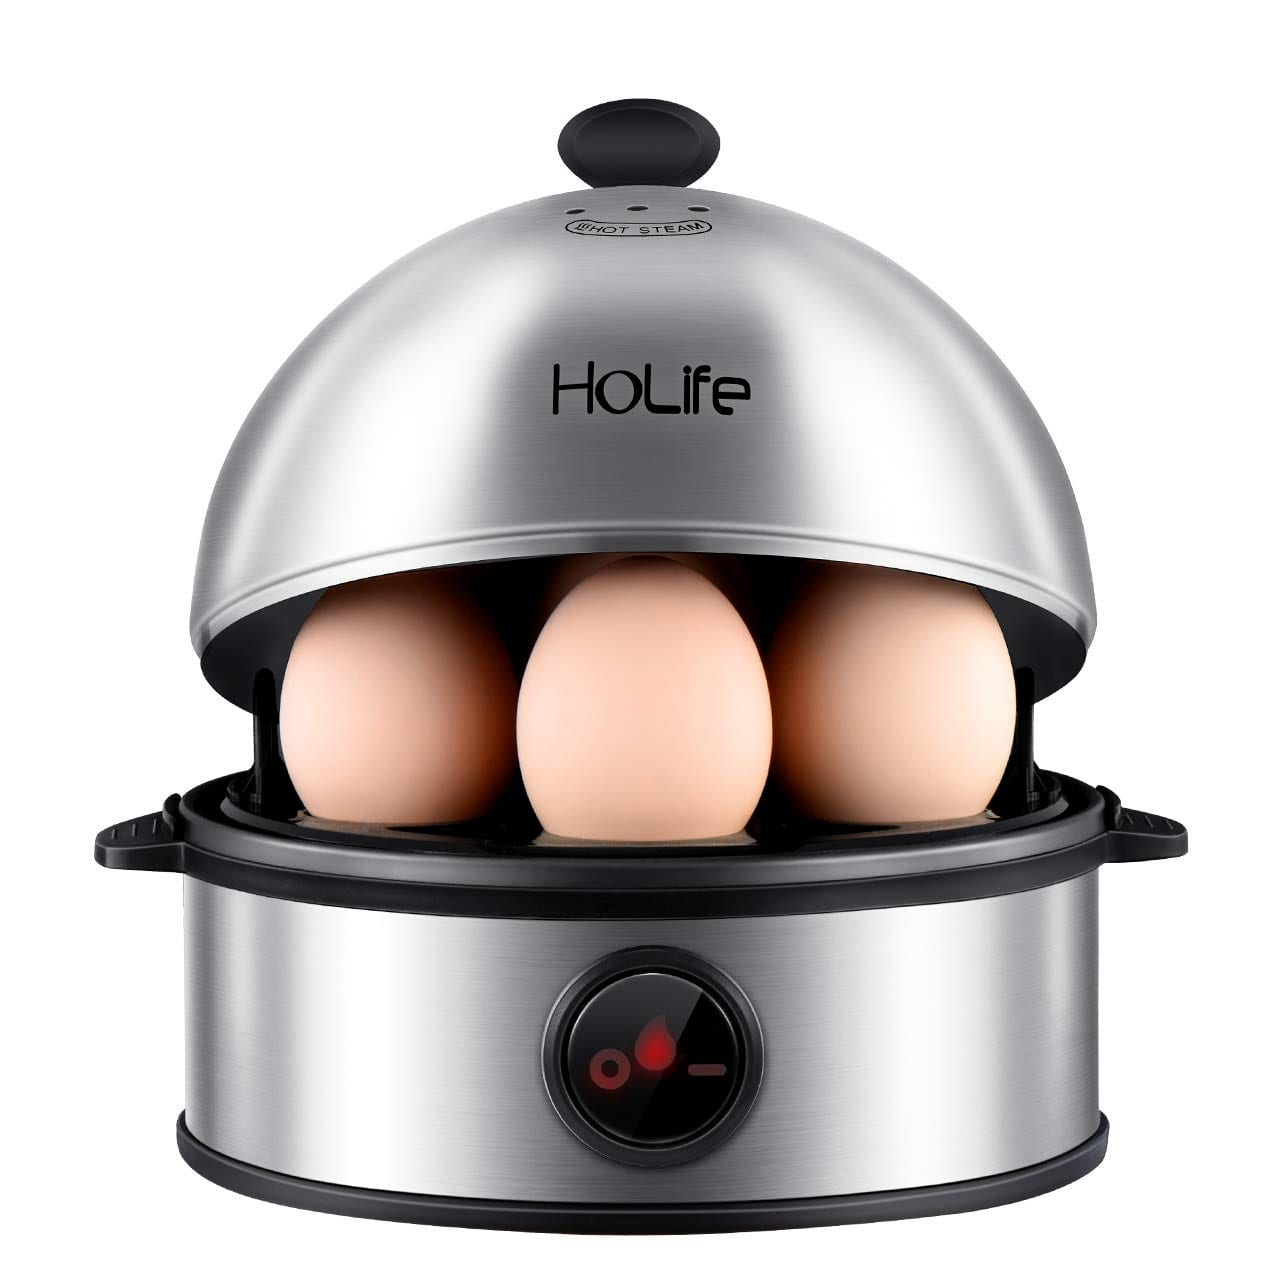 HoLife Stainless Steel Egg Boiler Steamer with Auto Shut off